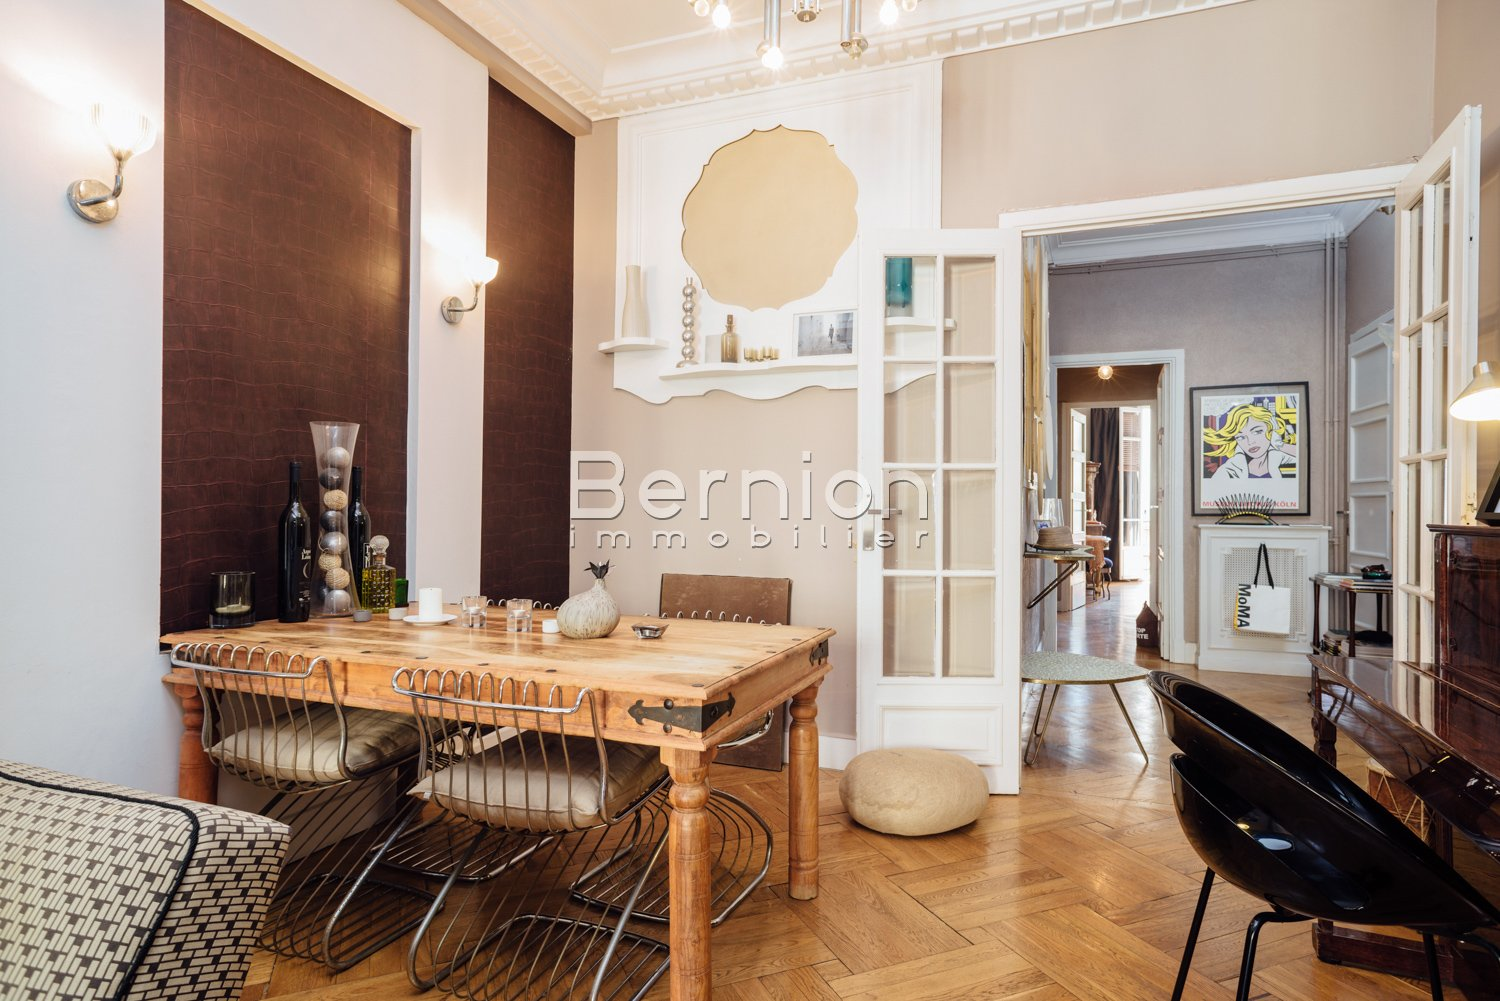 For Sale, Nice City Center Beautiful 72 sqm Apartment with terrace in Art Deco Building / photo 6